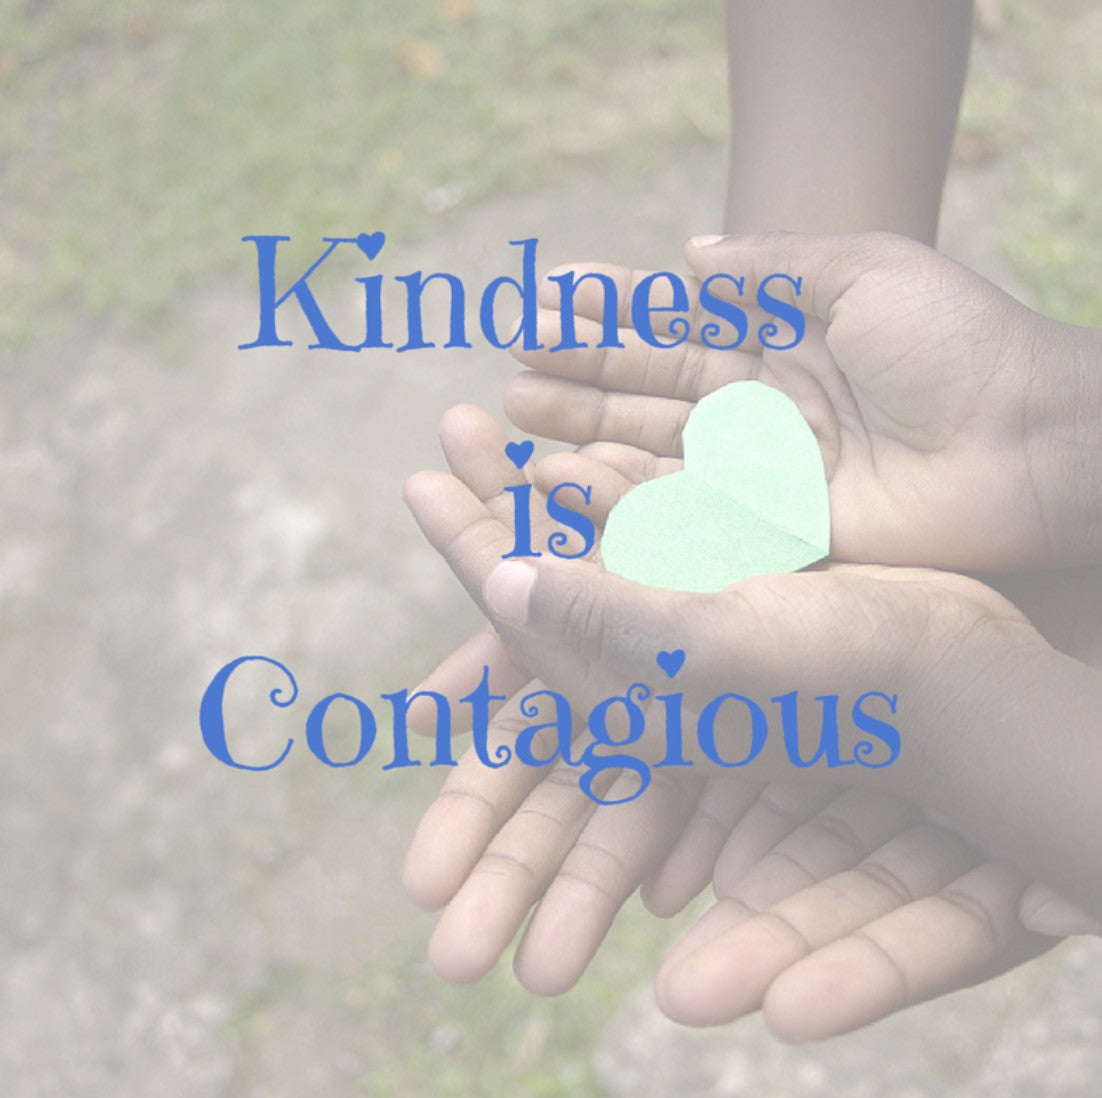 Stop Bullying Through Random Acts of Kindness